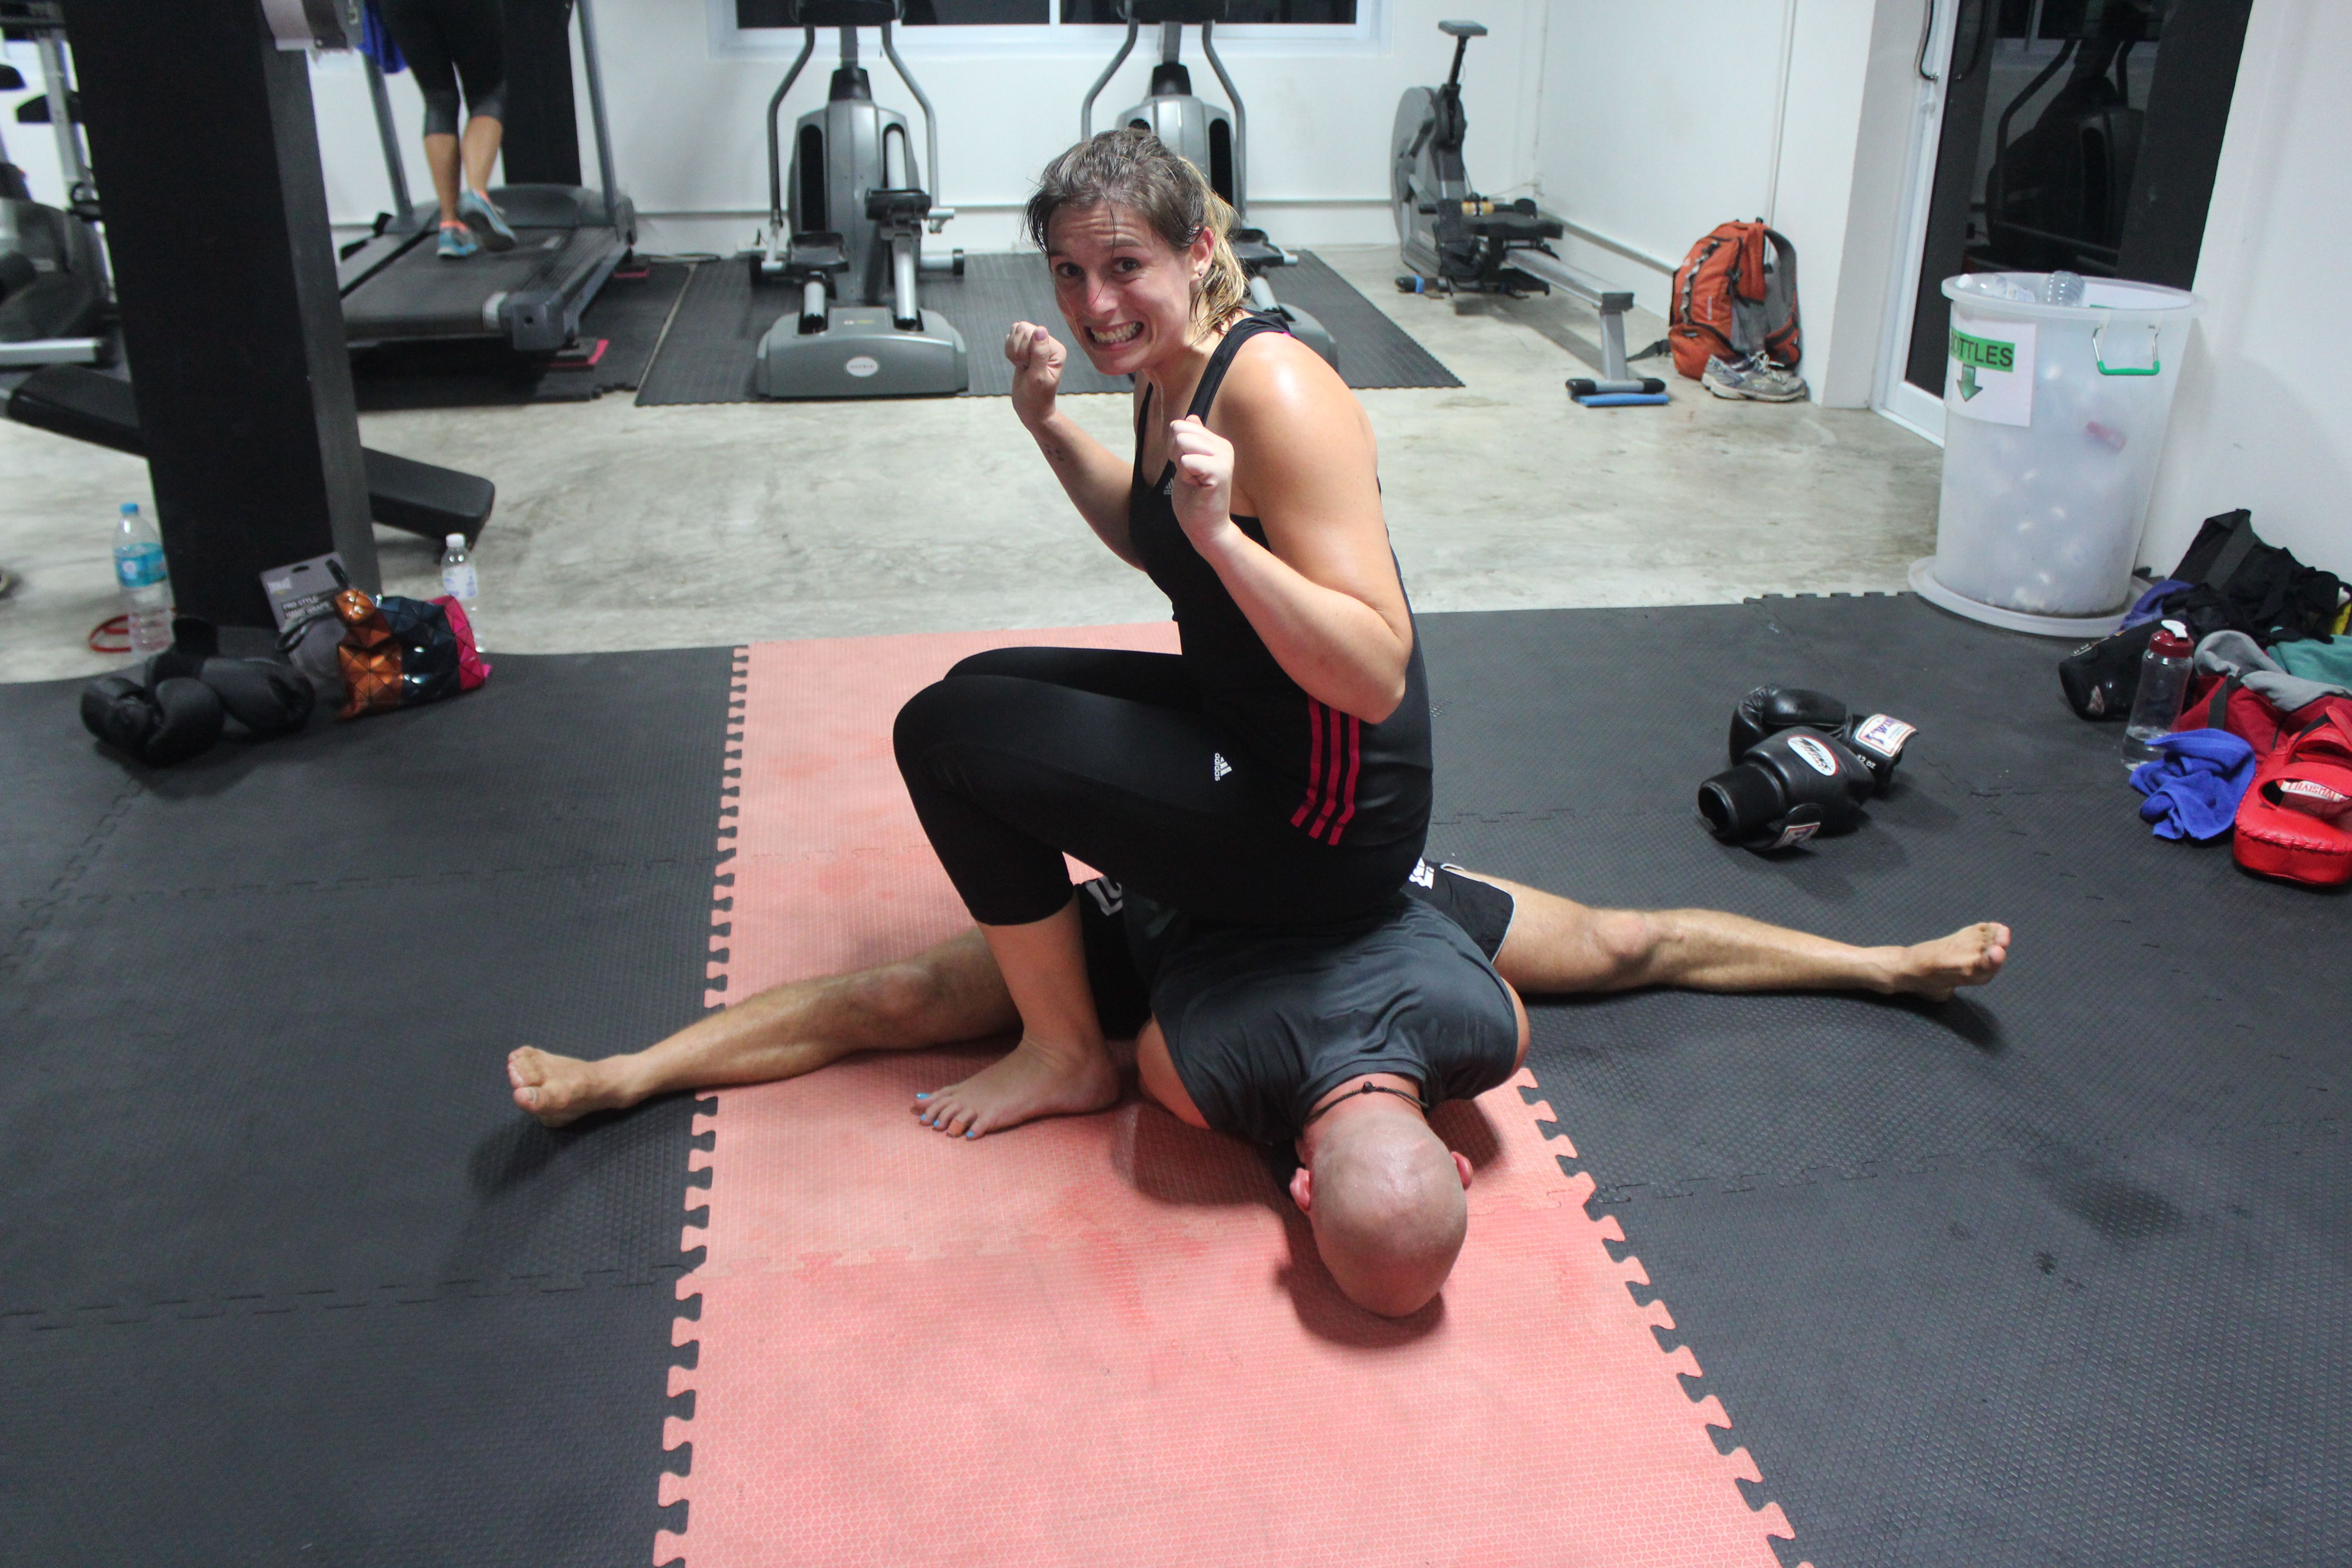 During one of our kickboxing classes in gym fitness koh